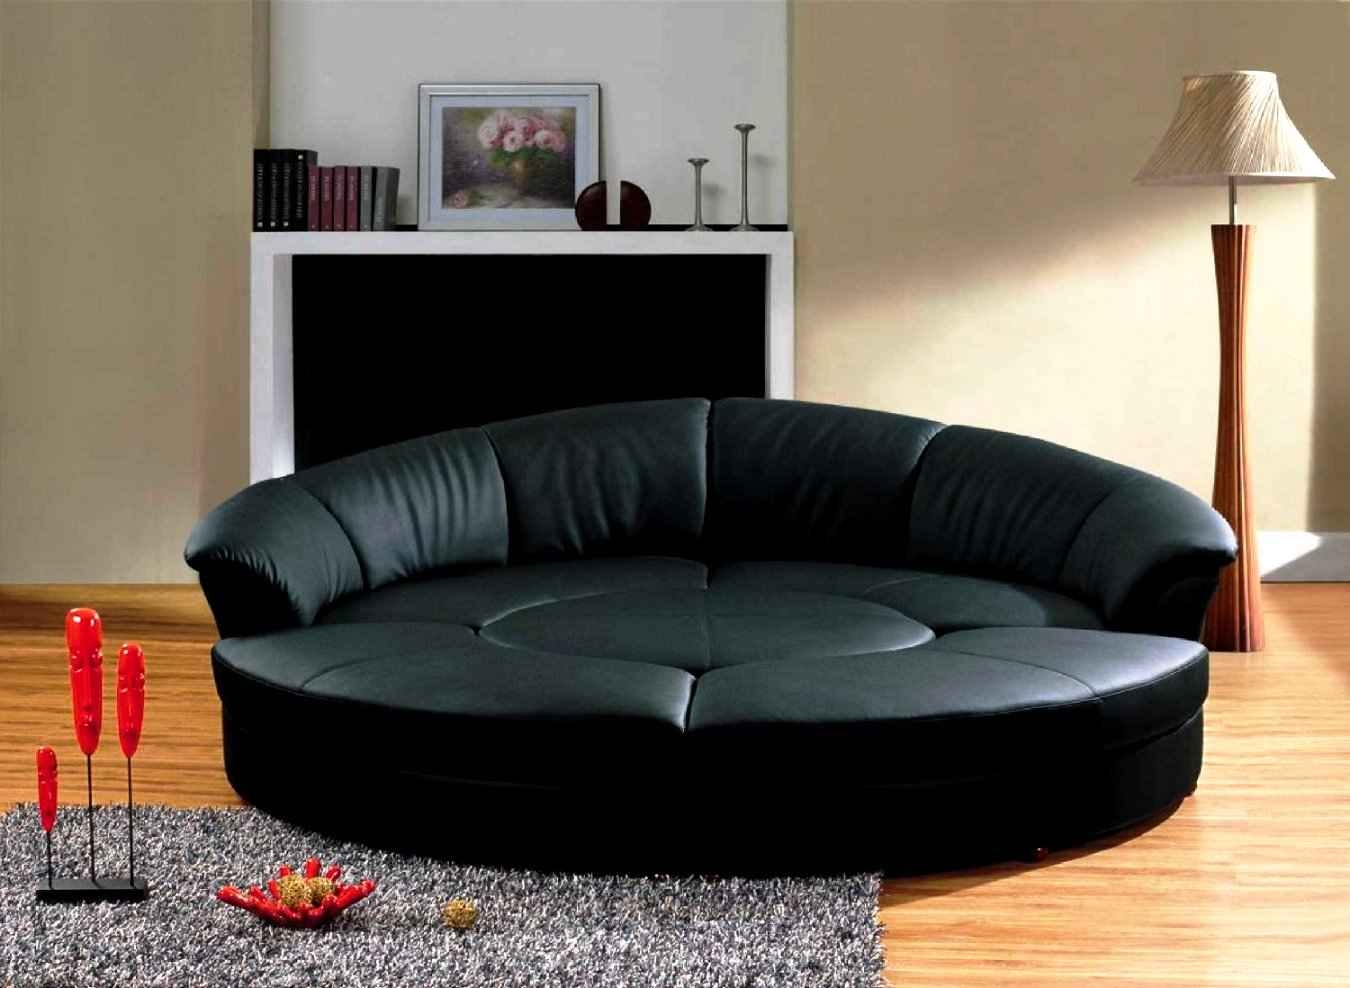 Sofa Round Chair Canada For Sale Ikea Harvey Norman With Cup Pertaining To Circular Sofa Chairs (Image 9 of 15)